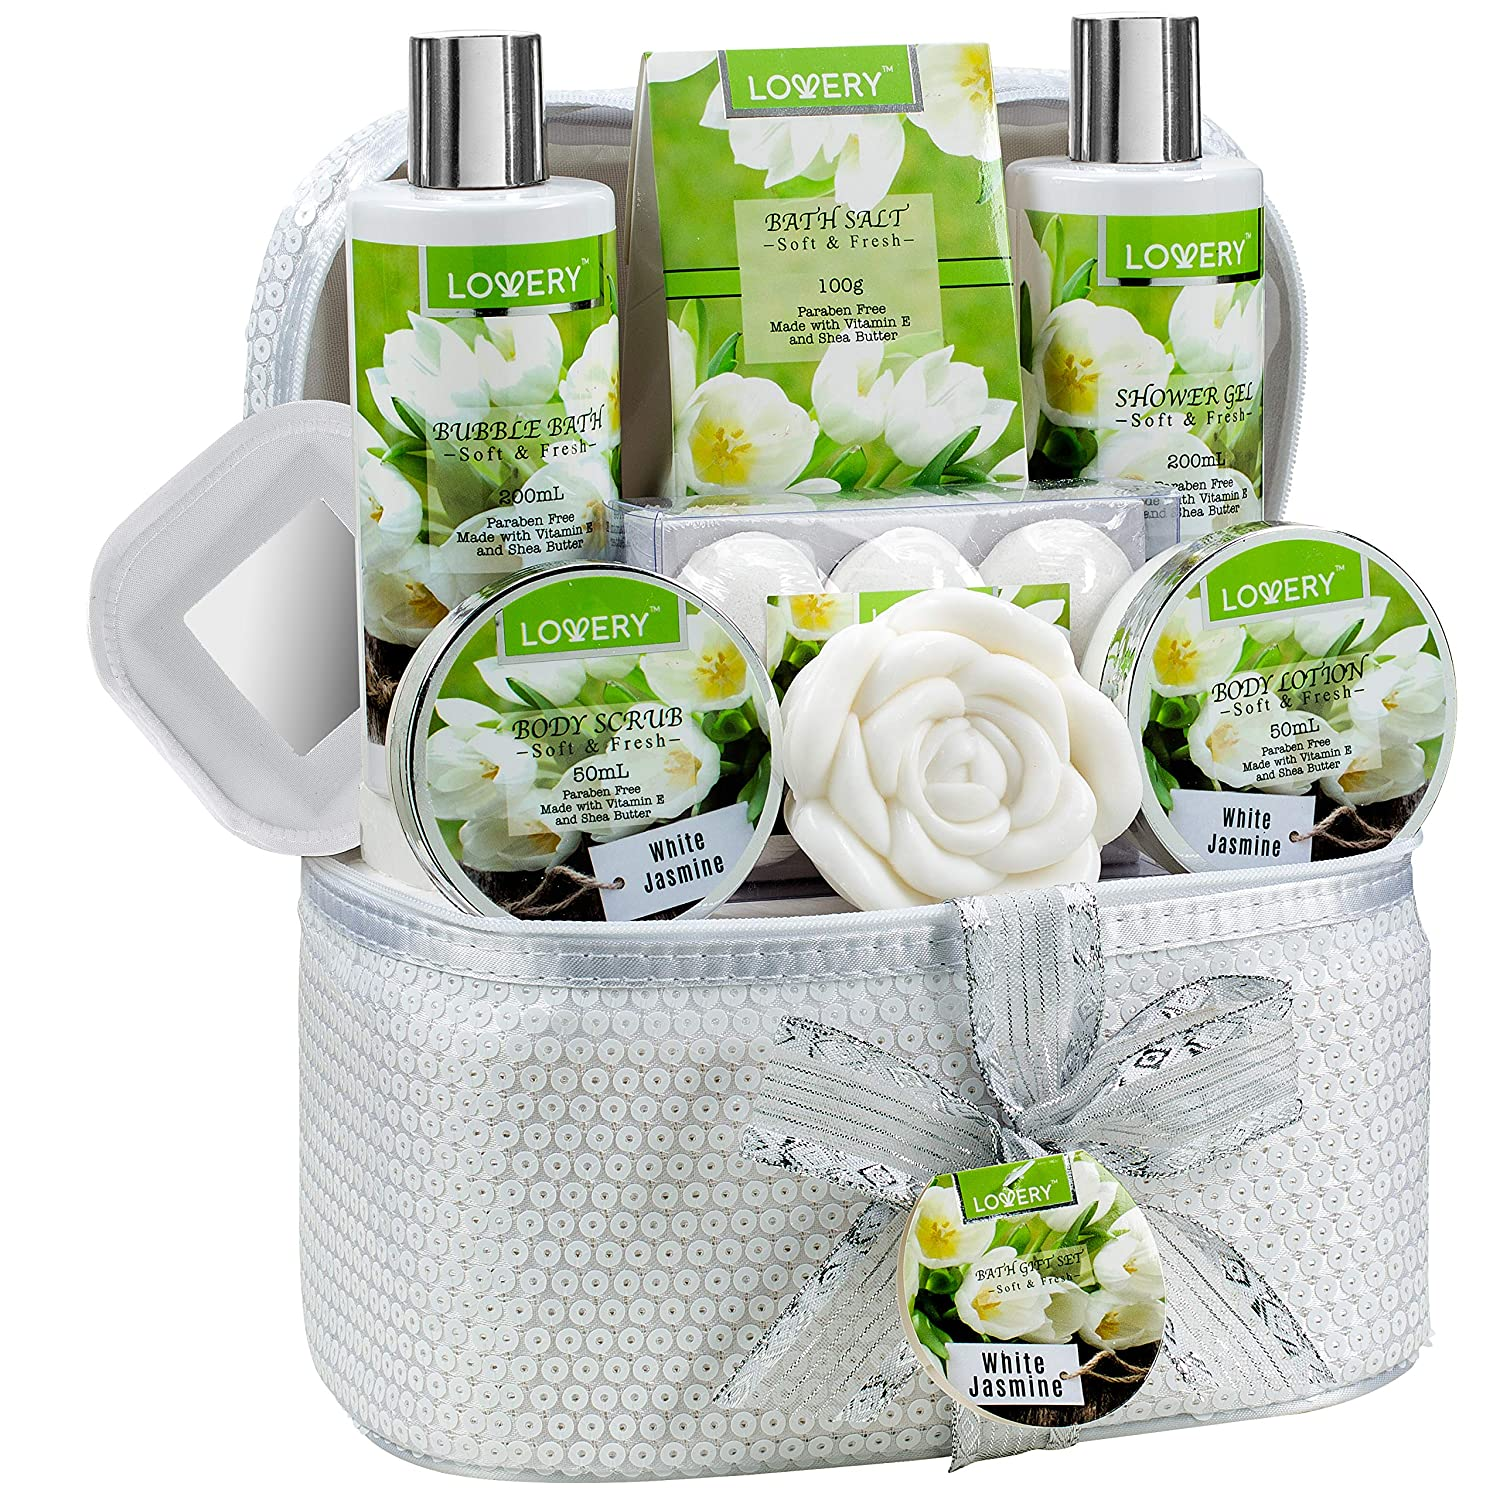 Bath and Body Gift Basket For Women Men 14 Piece Set in White Jasmine Scent – Home Spa Set with 6 Bath Bombs, Body Lotion, Rose Soaps, Hand Crafted White Sequined Cosmetics Bag and More